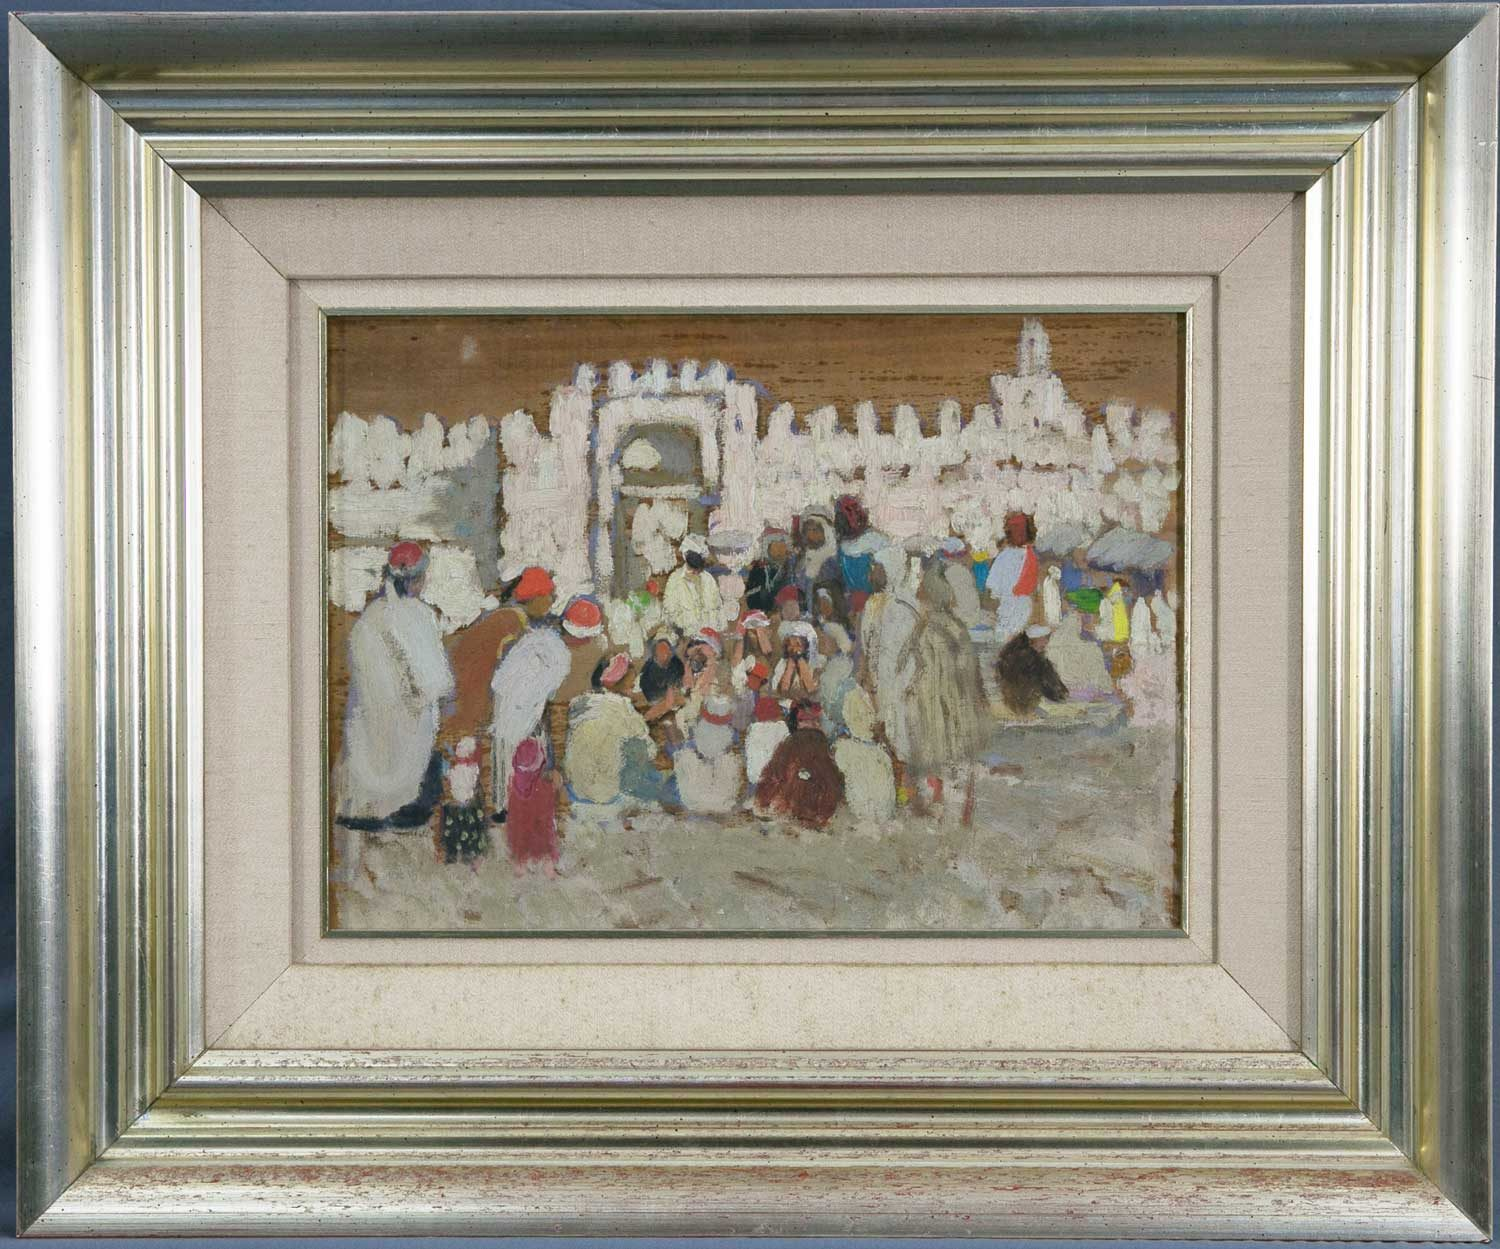 Ethel Carrick FOX Untitled framed